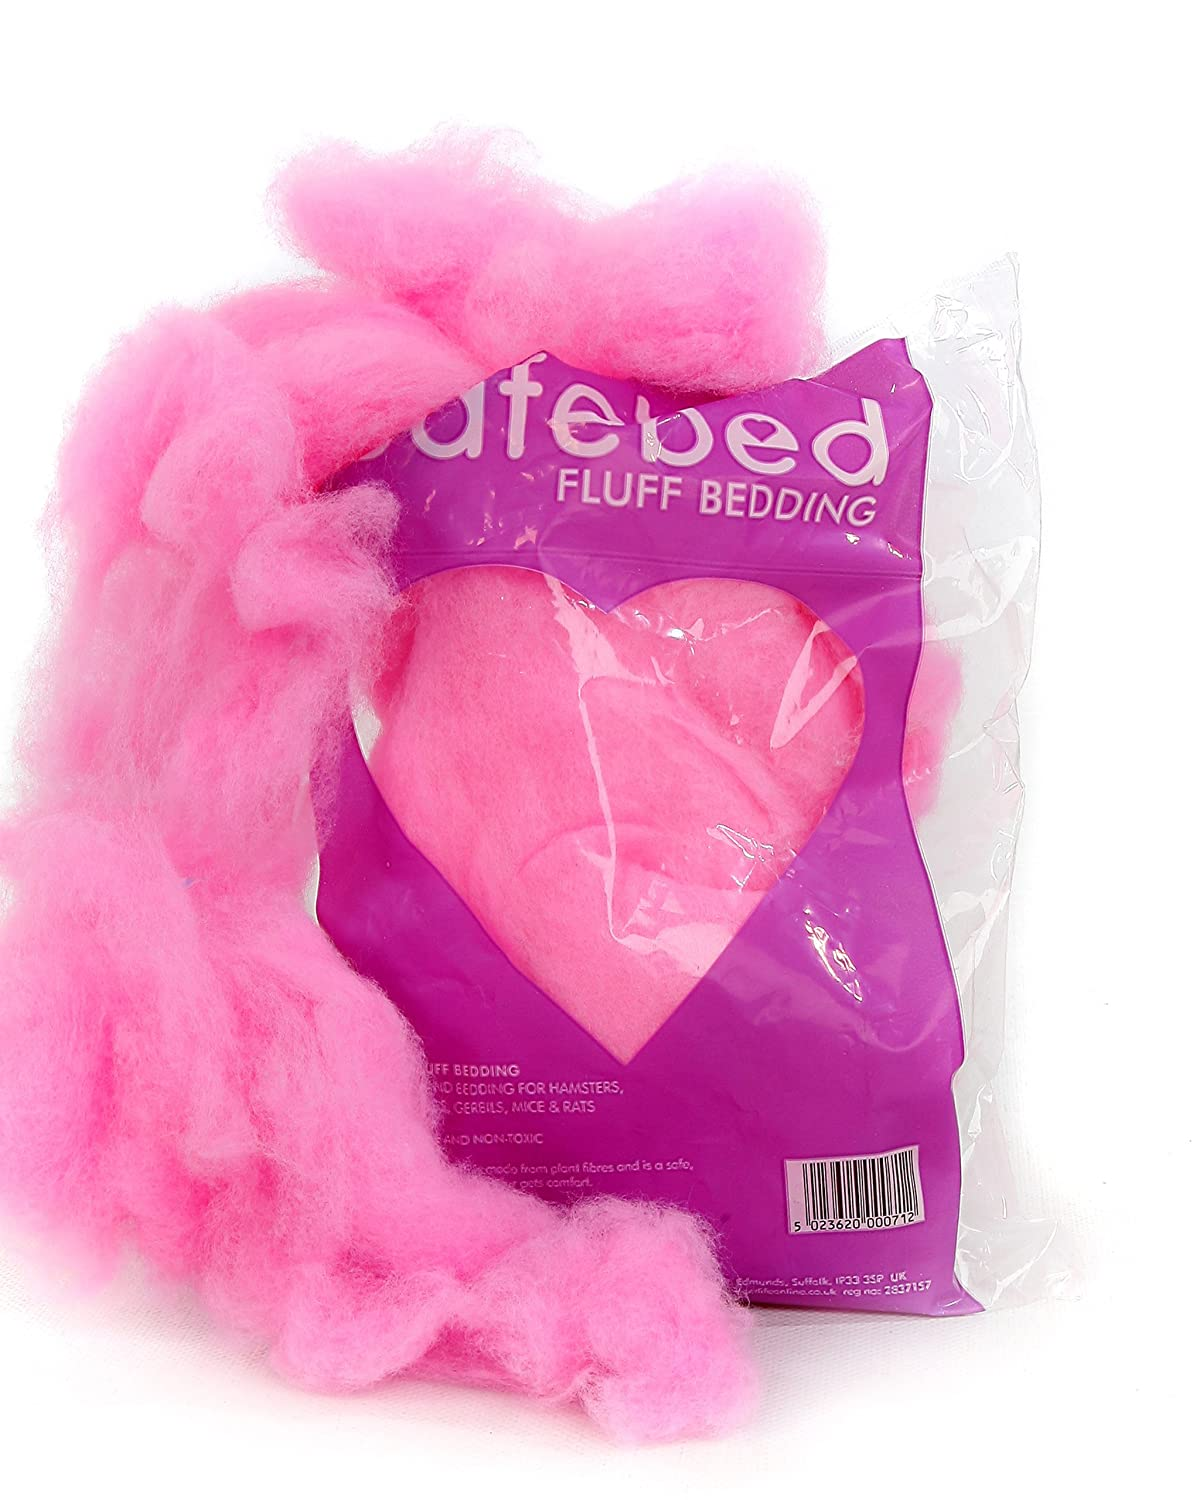 Safebed Fluff Petlife Small Animal Bedding Sachet For Small Pet (Colours Vary)